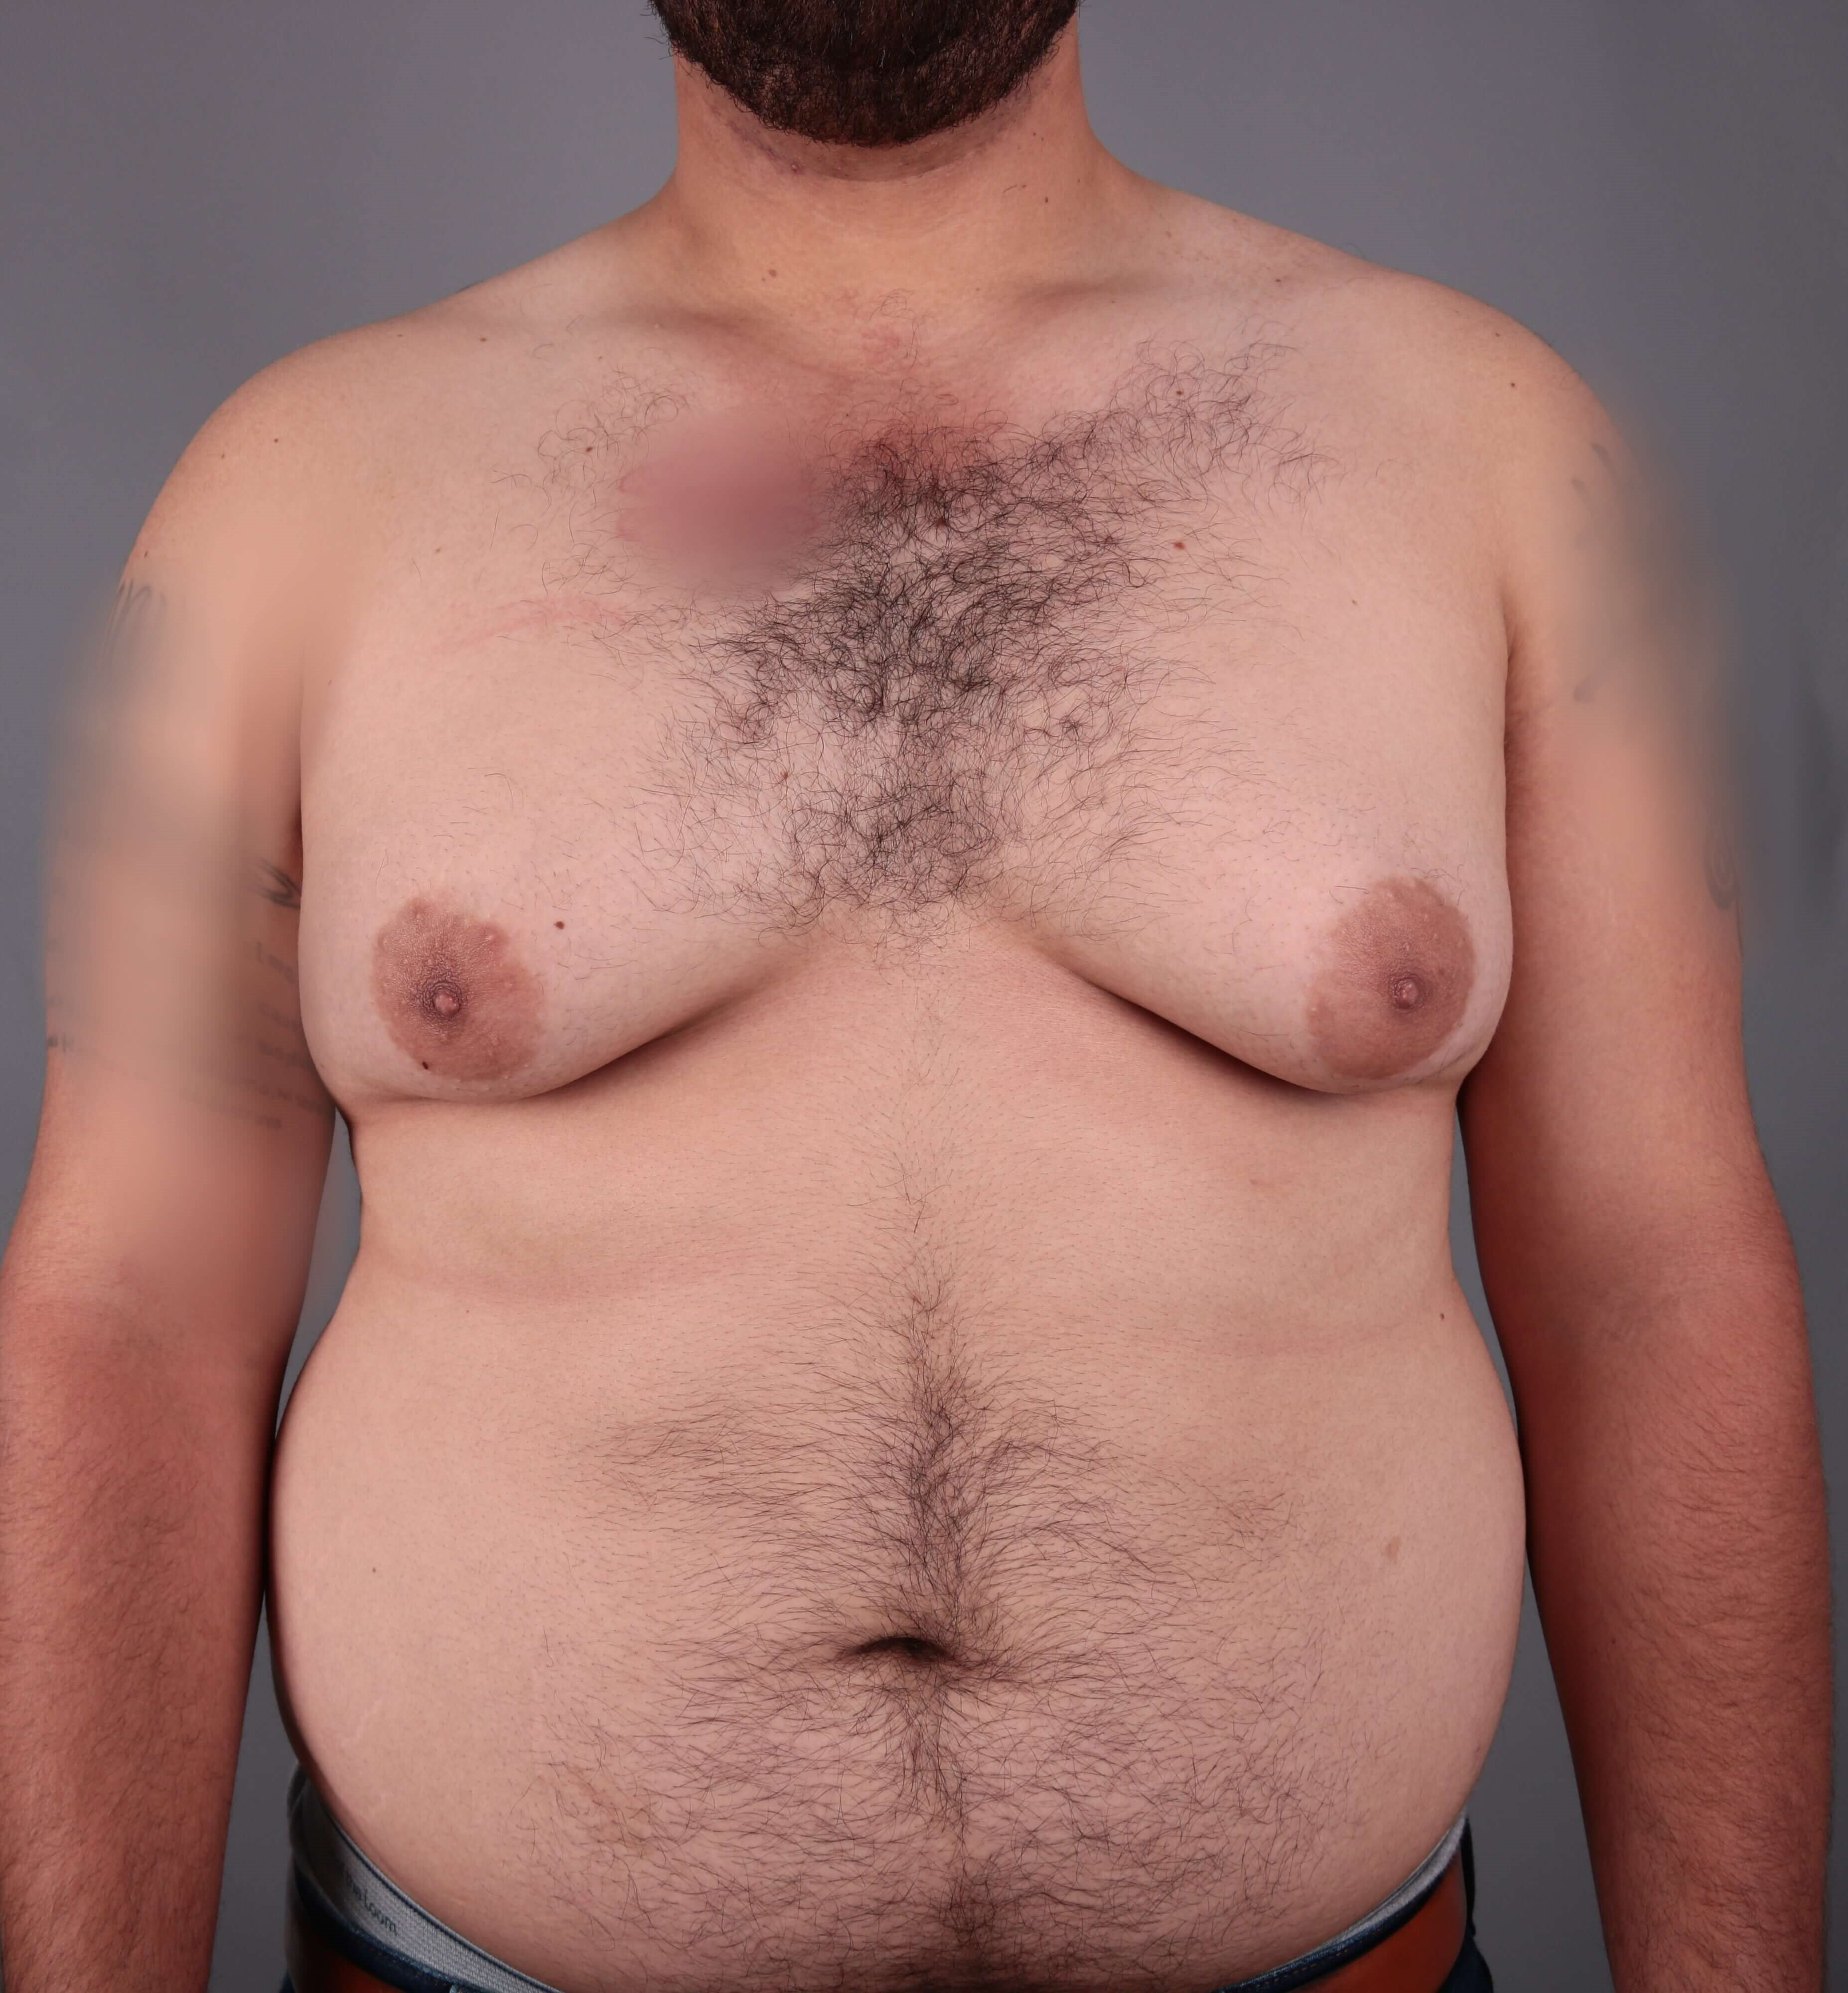 gynecomastia excision Before